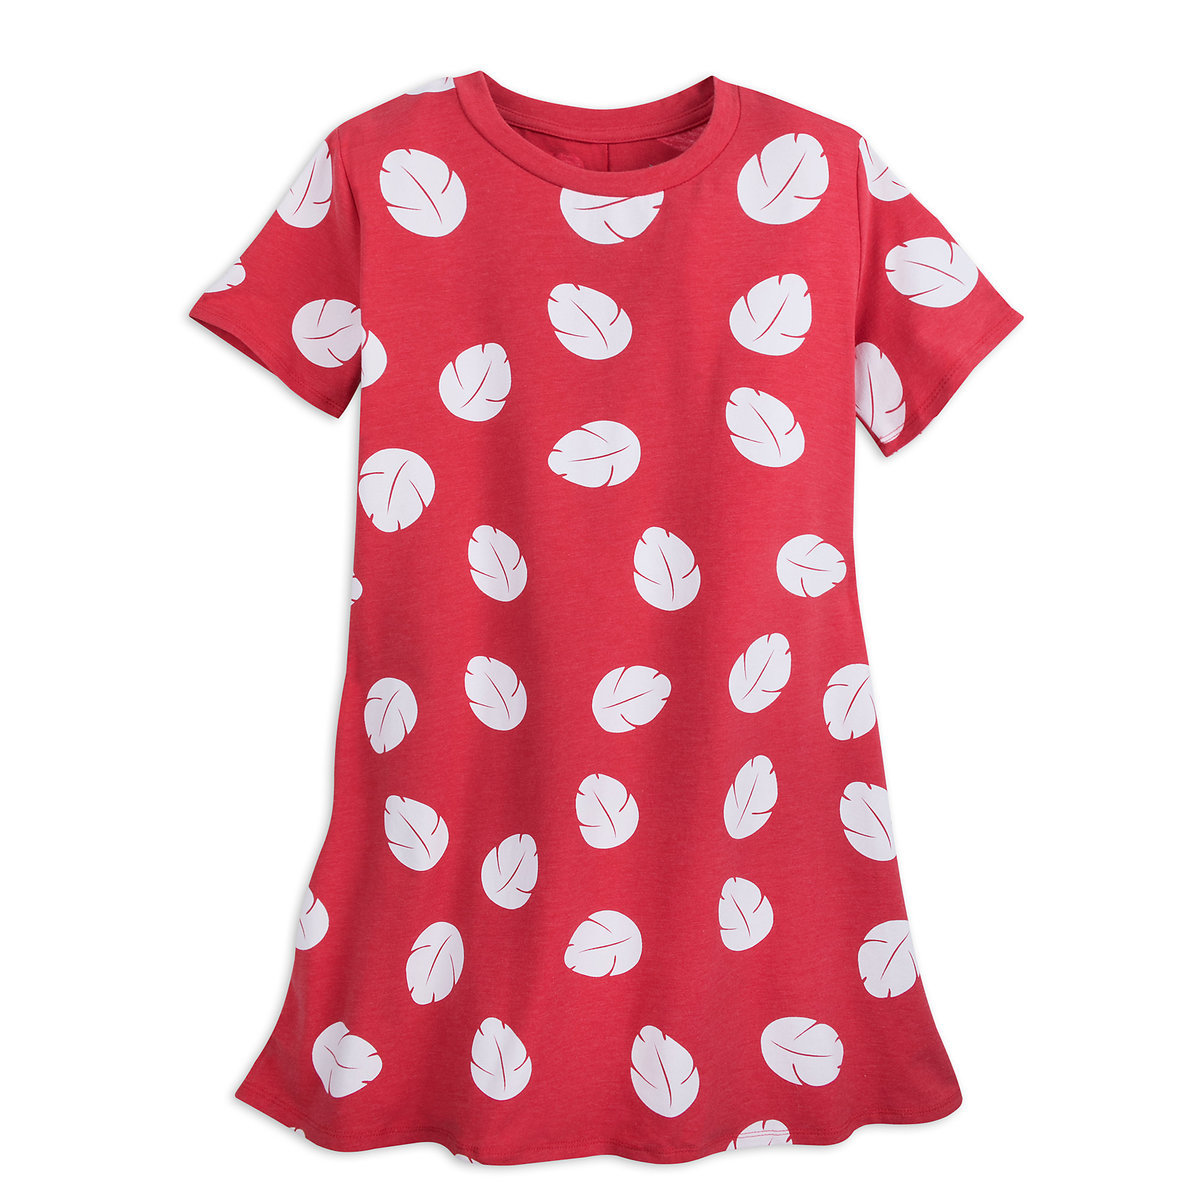 672e677f86 Product Image of Lilo Shirt Dress for Women - Oh My Disney # 1